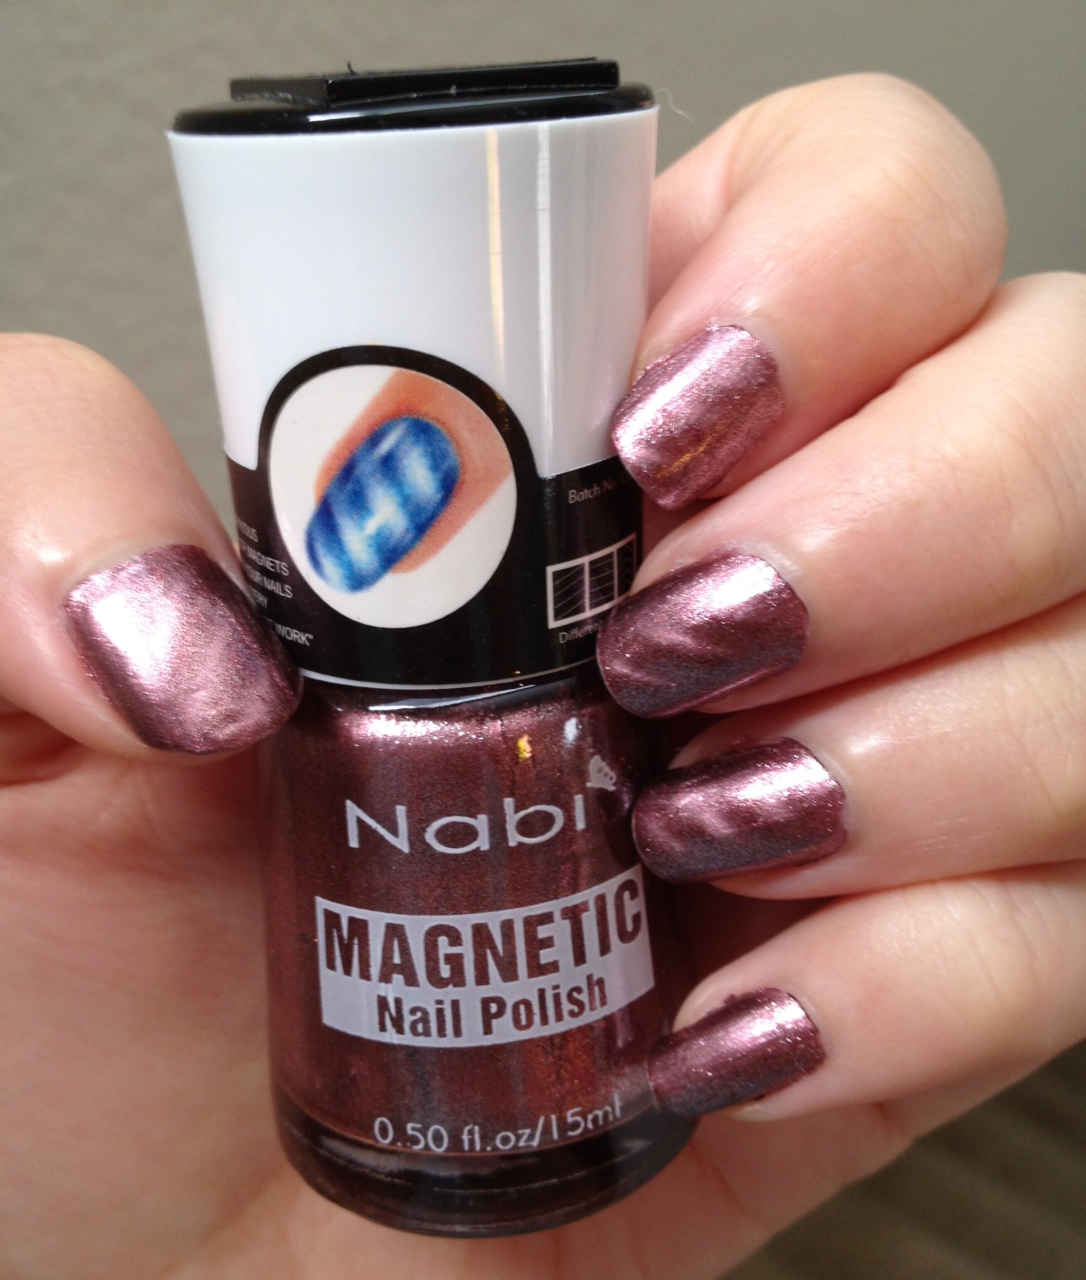 Beauty Misanthropic: Nabi Magnetic Nail Polish 04 Cinnamon